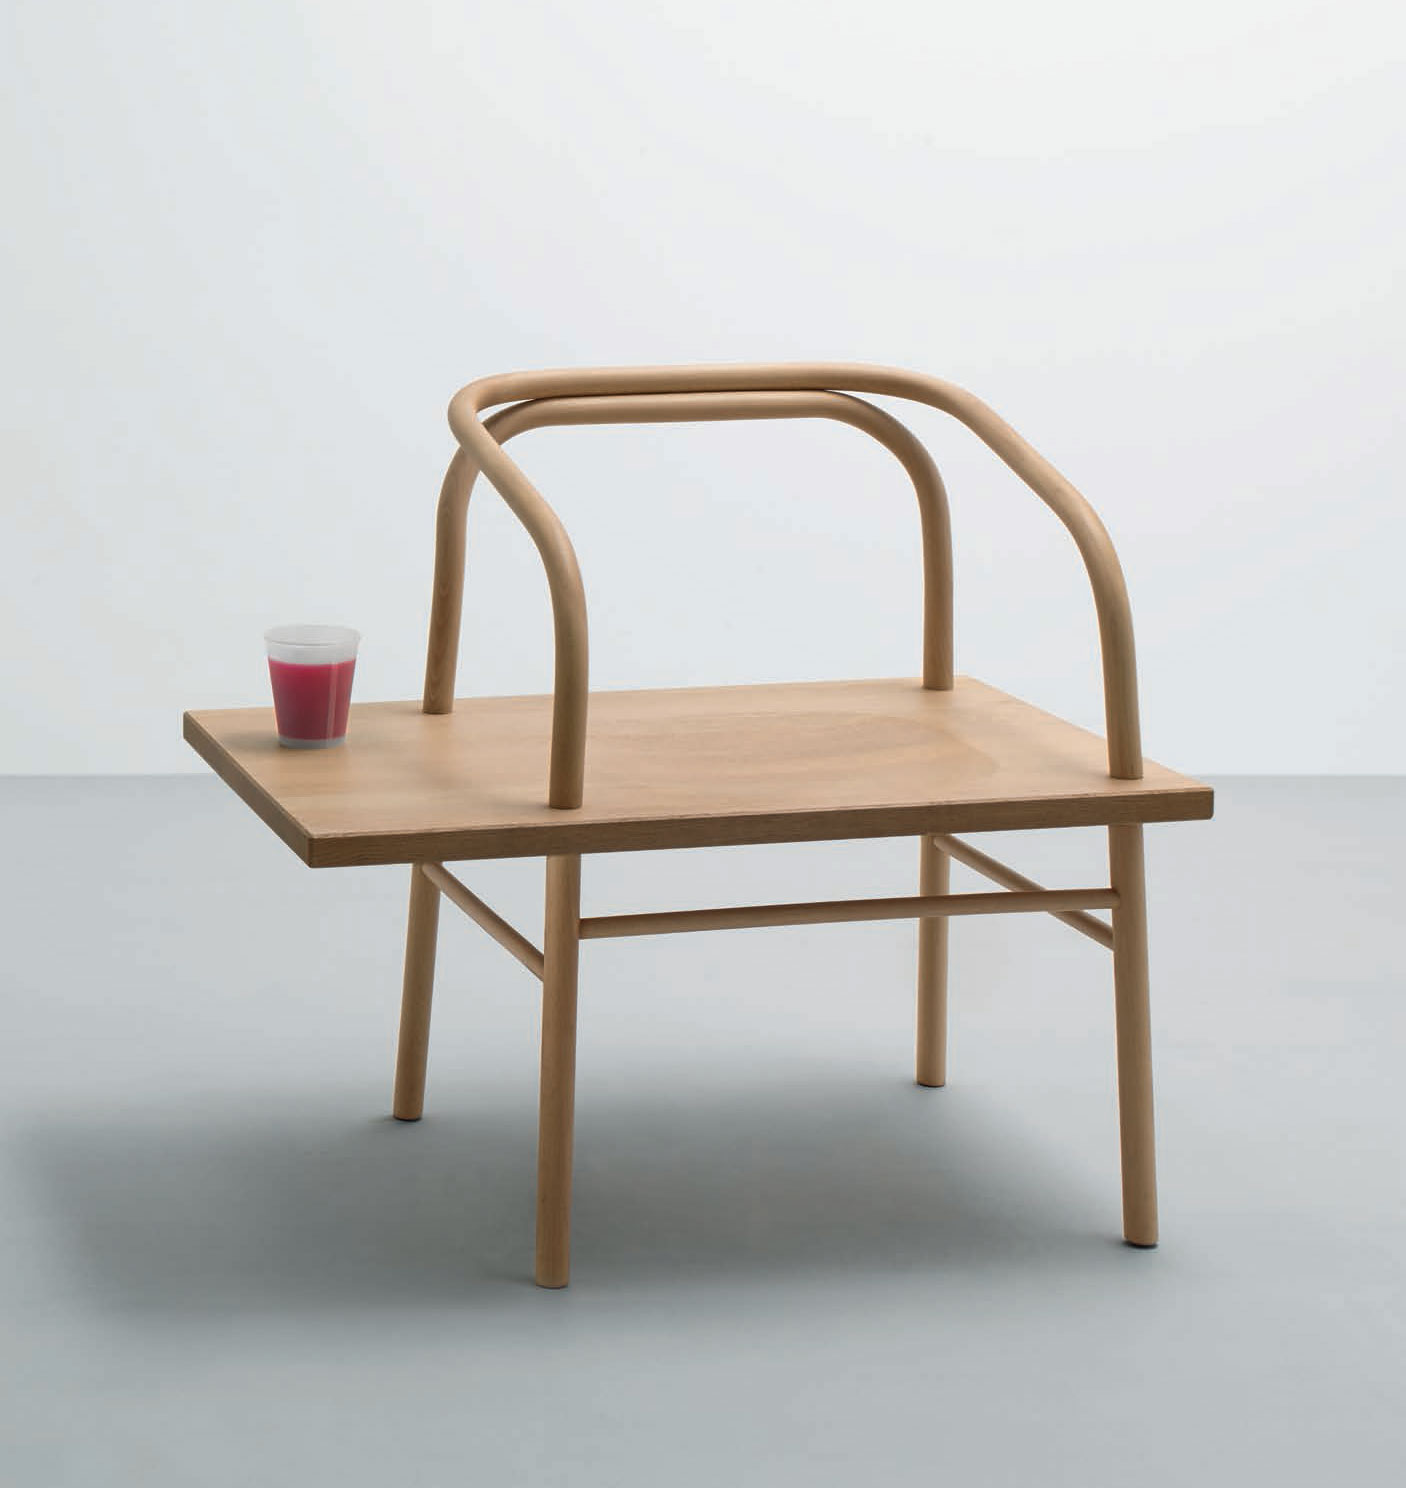 Table, Bench, Chair 2008, by Industrial Facility for Established & Sons